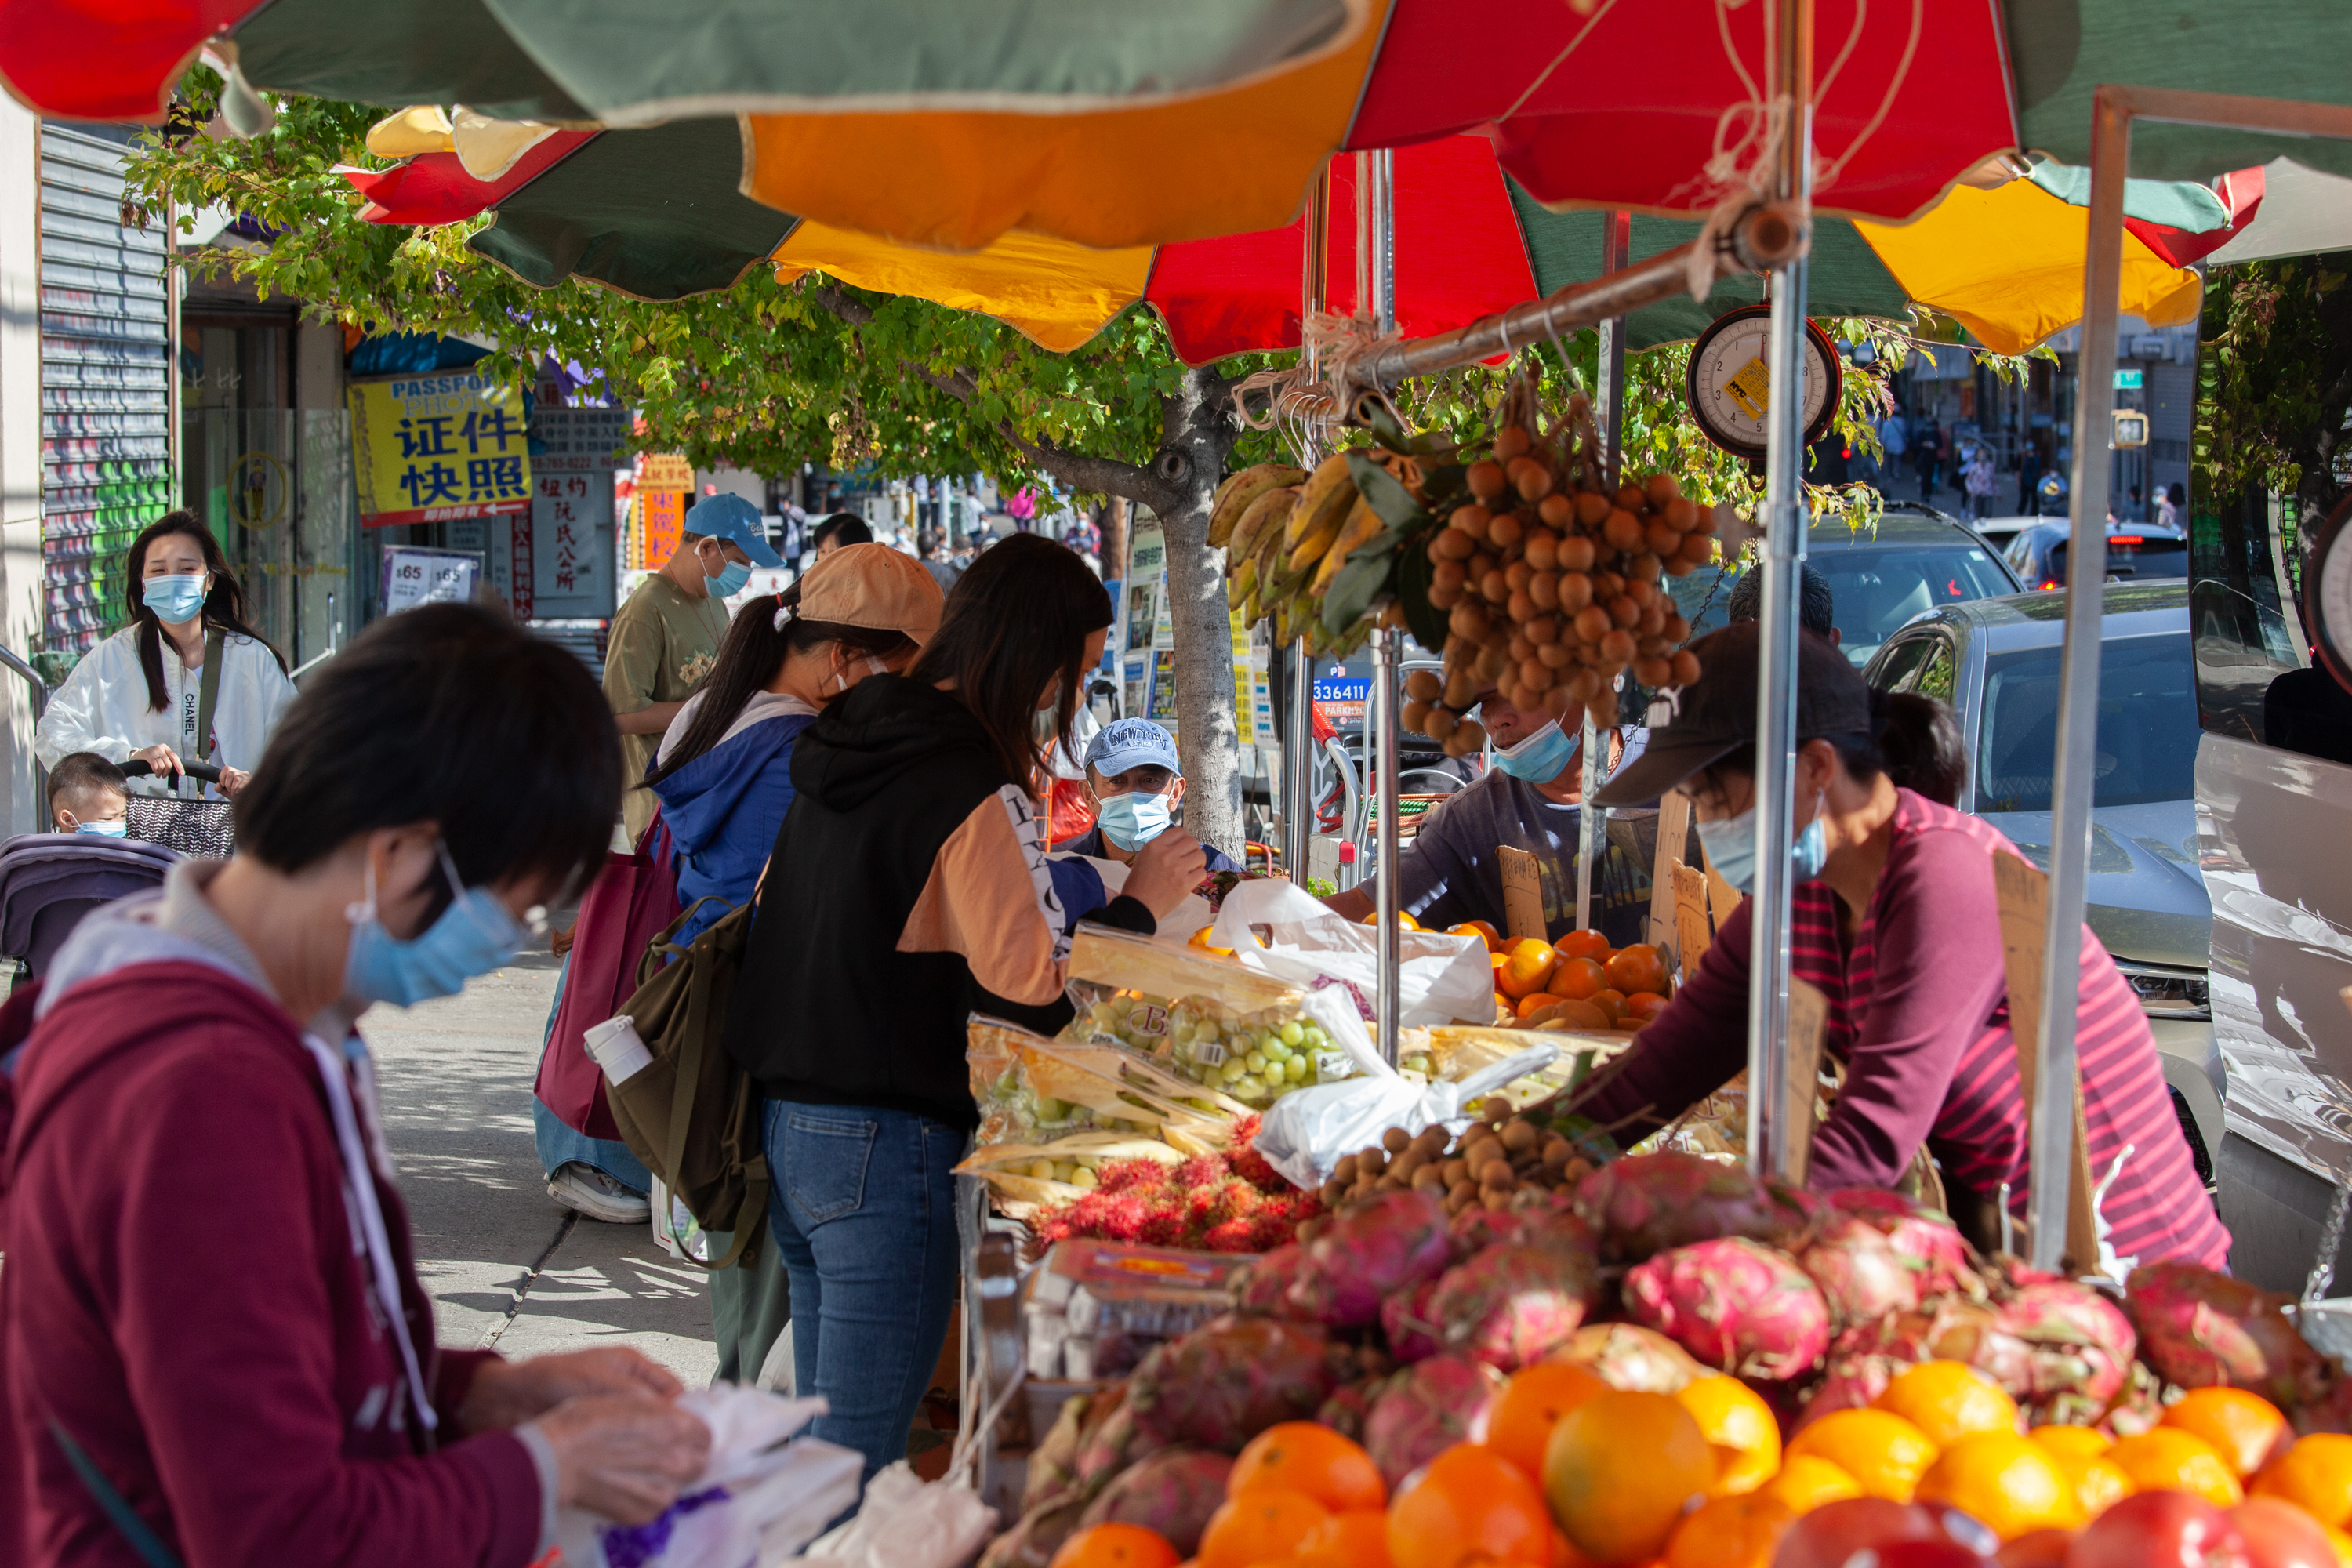 Street vendors sell produce in Sunset Park, Brooklyn, Oct. 7, 2020.